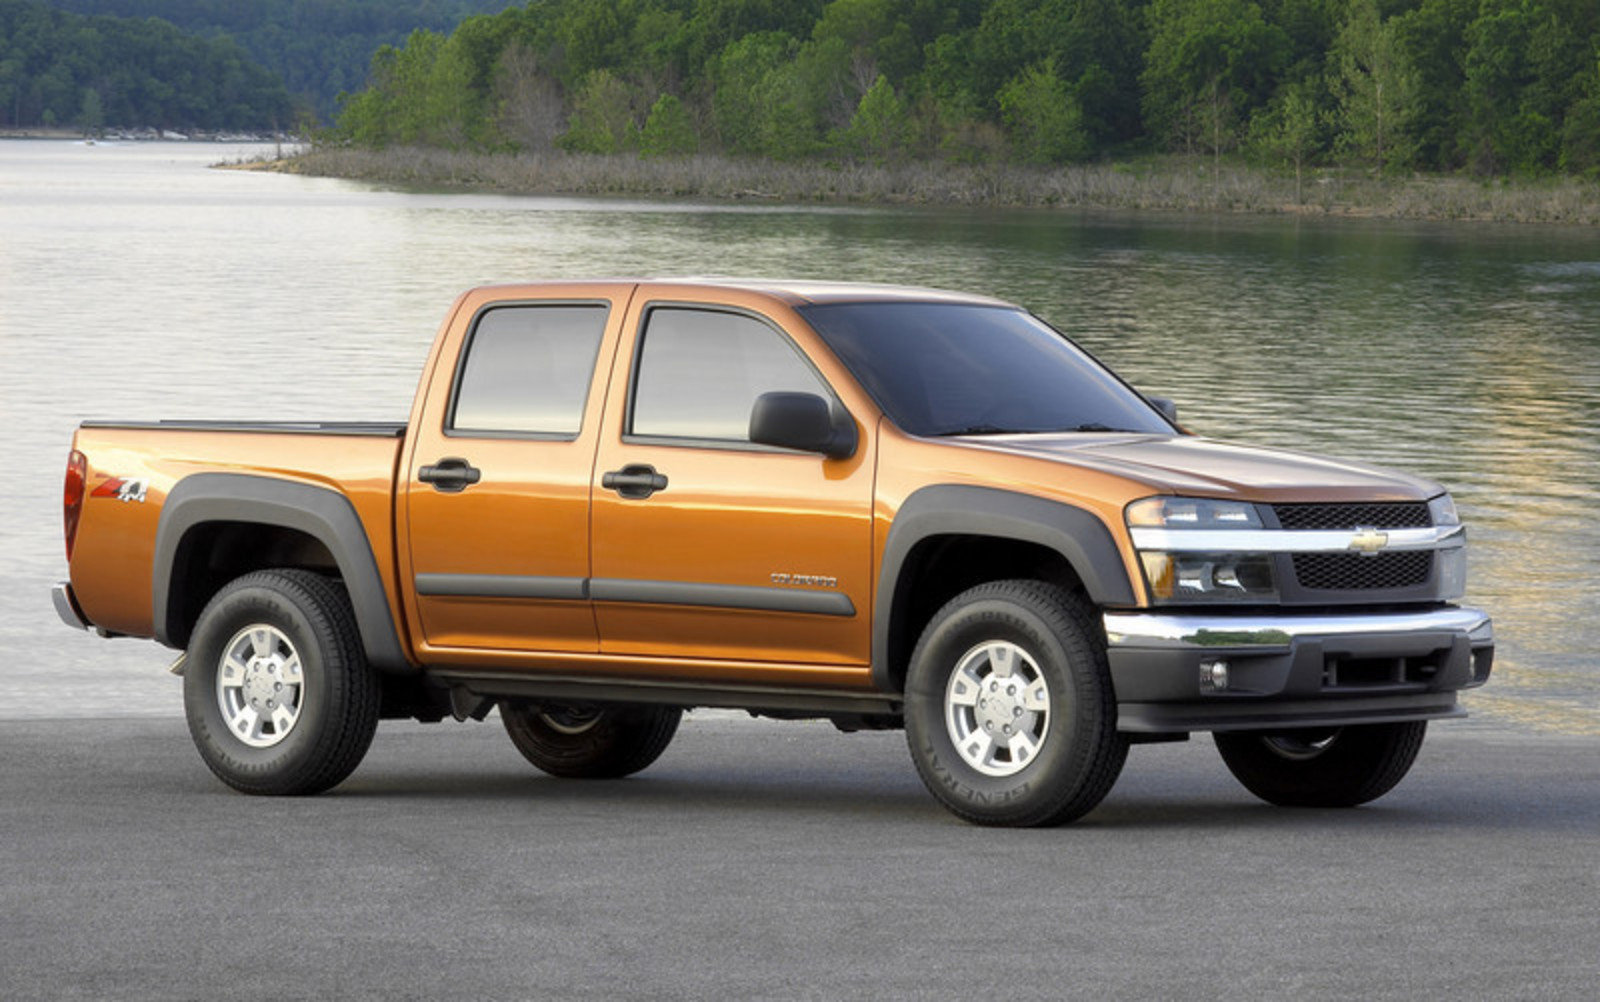 2007 chevrolet colorado review - top speed